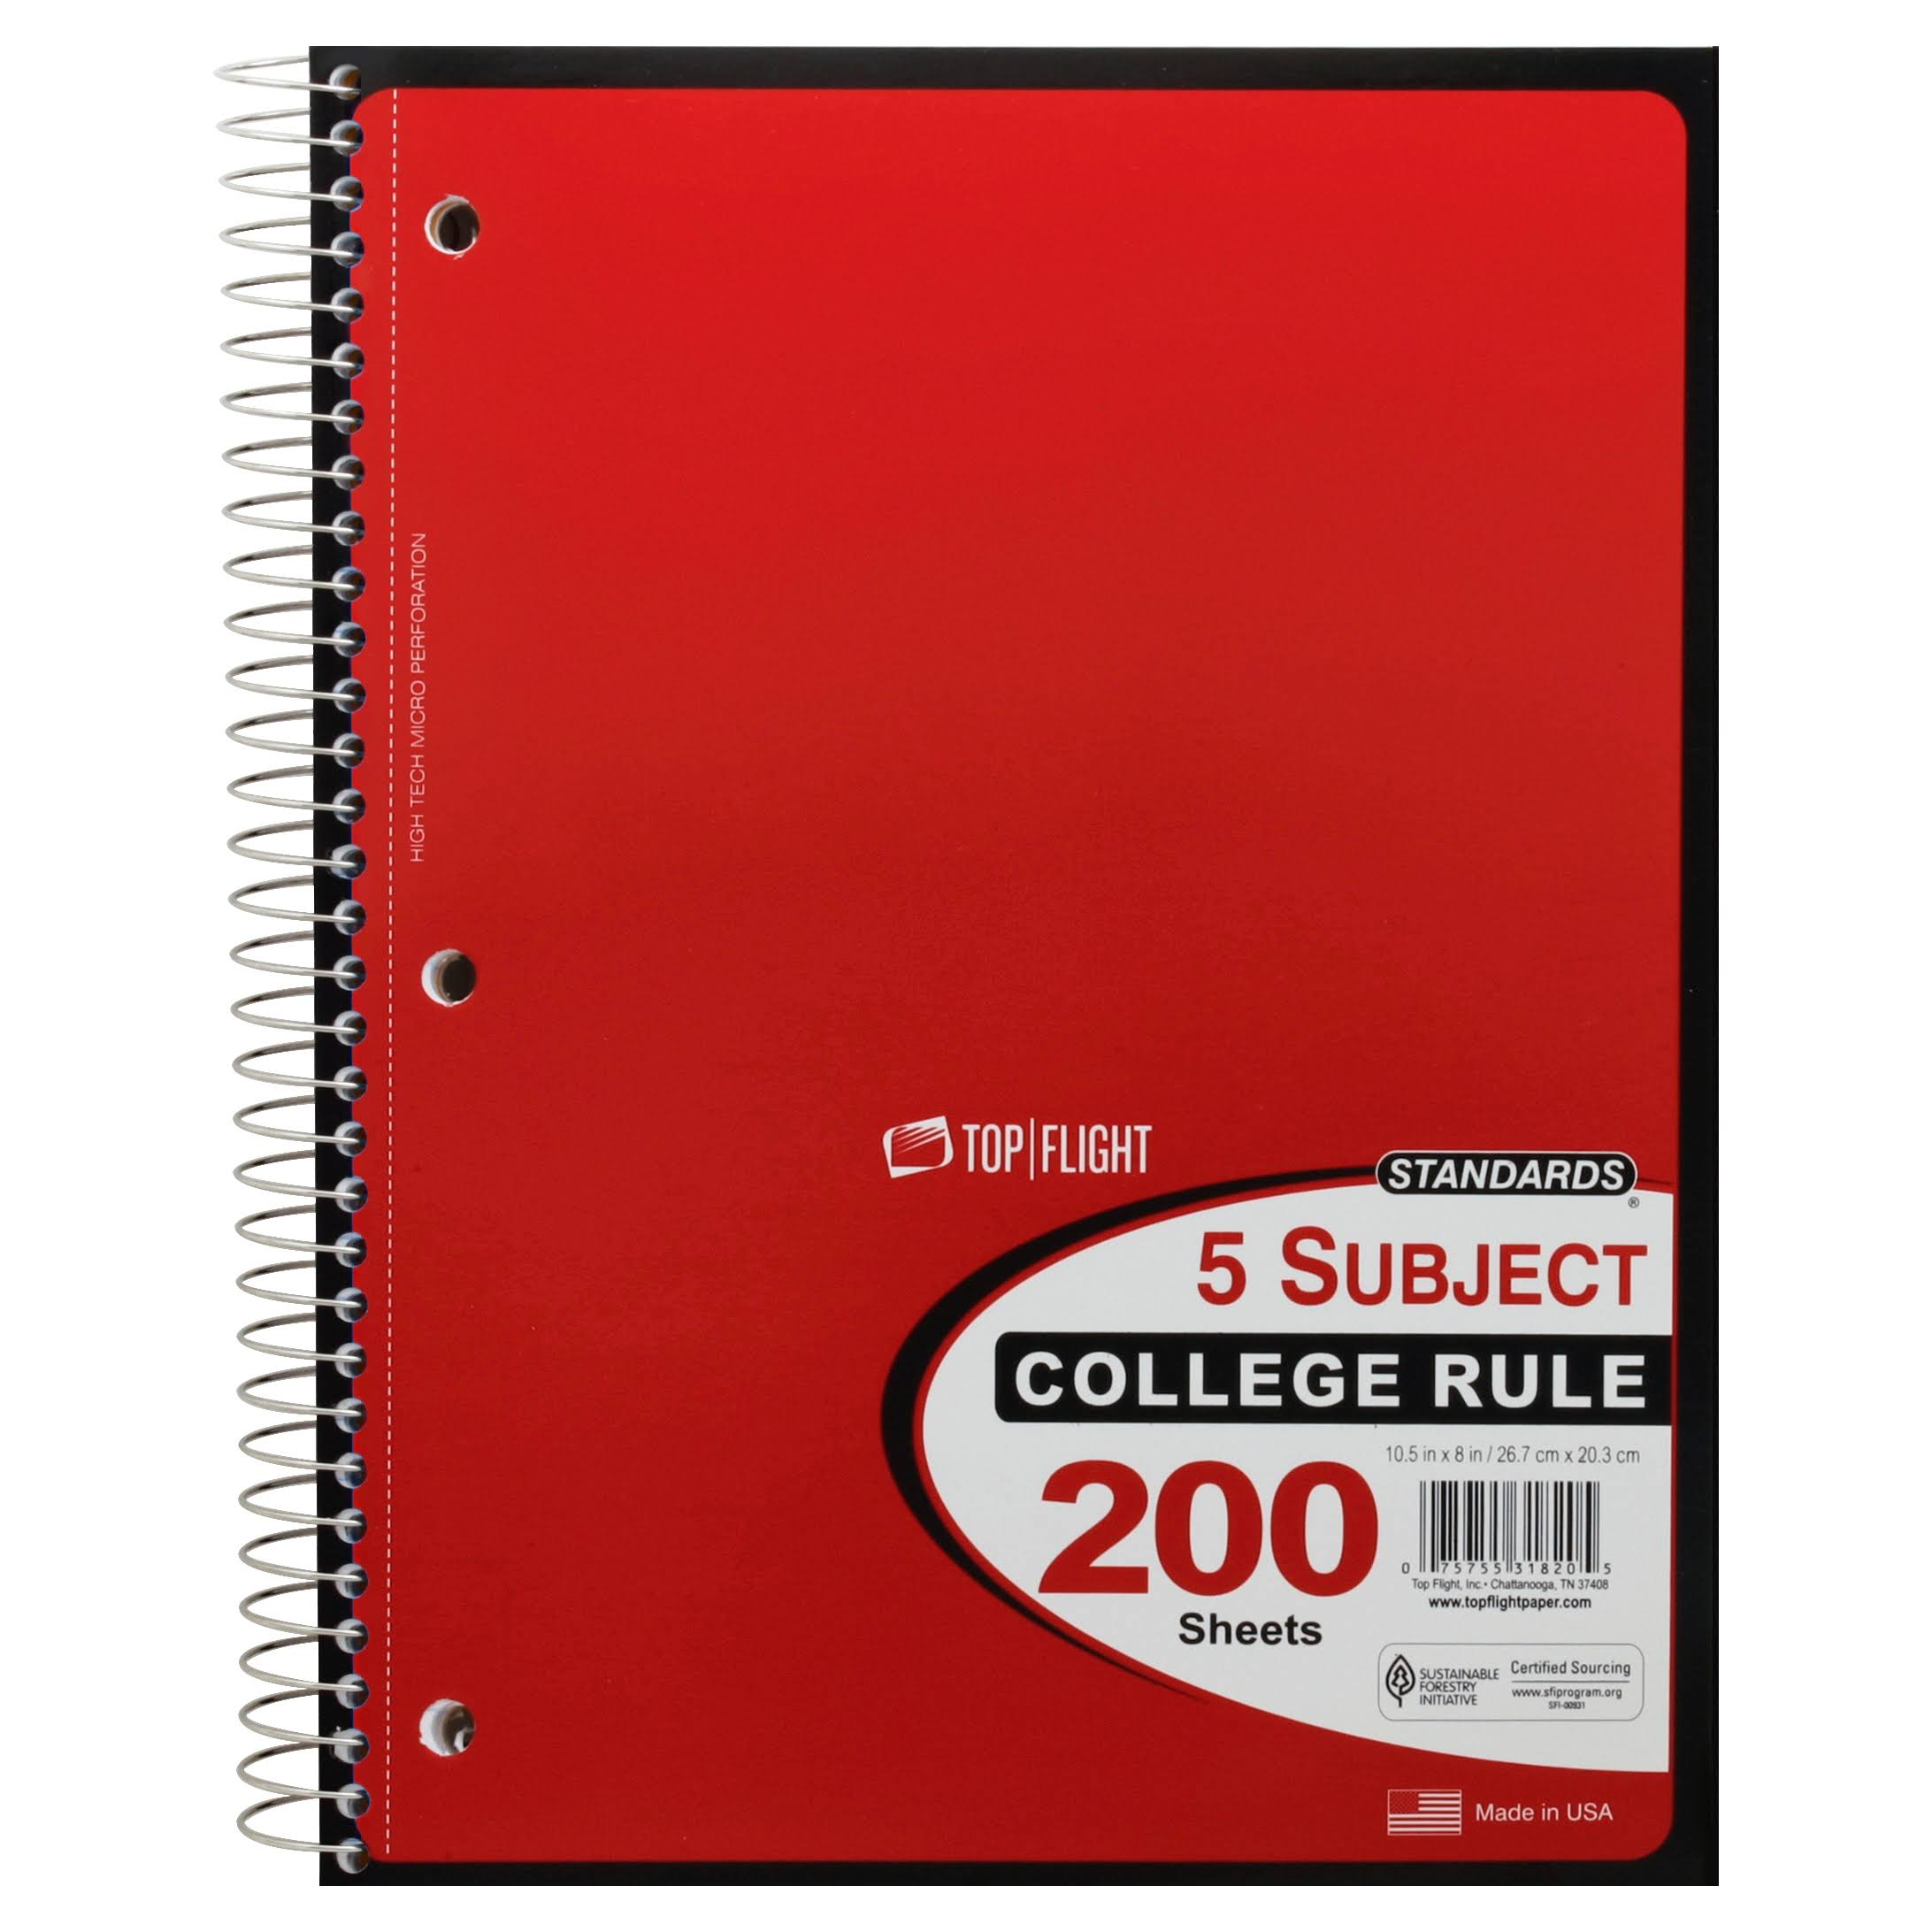 Top Flight Standards Notebook, 5 Subject, College Rule, 200 Sheets